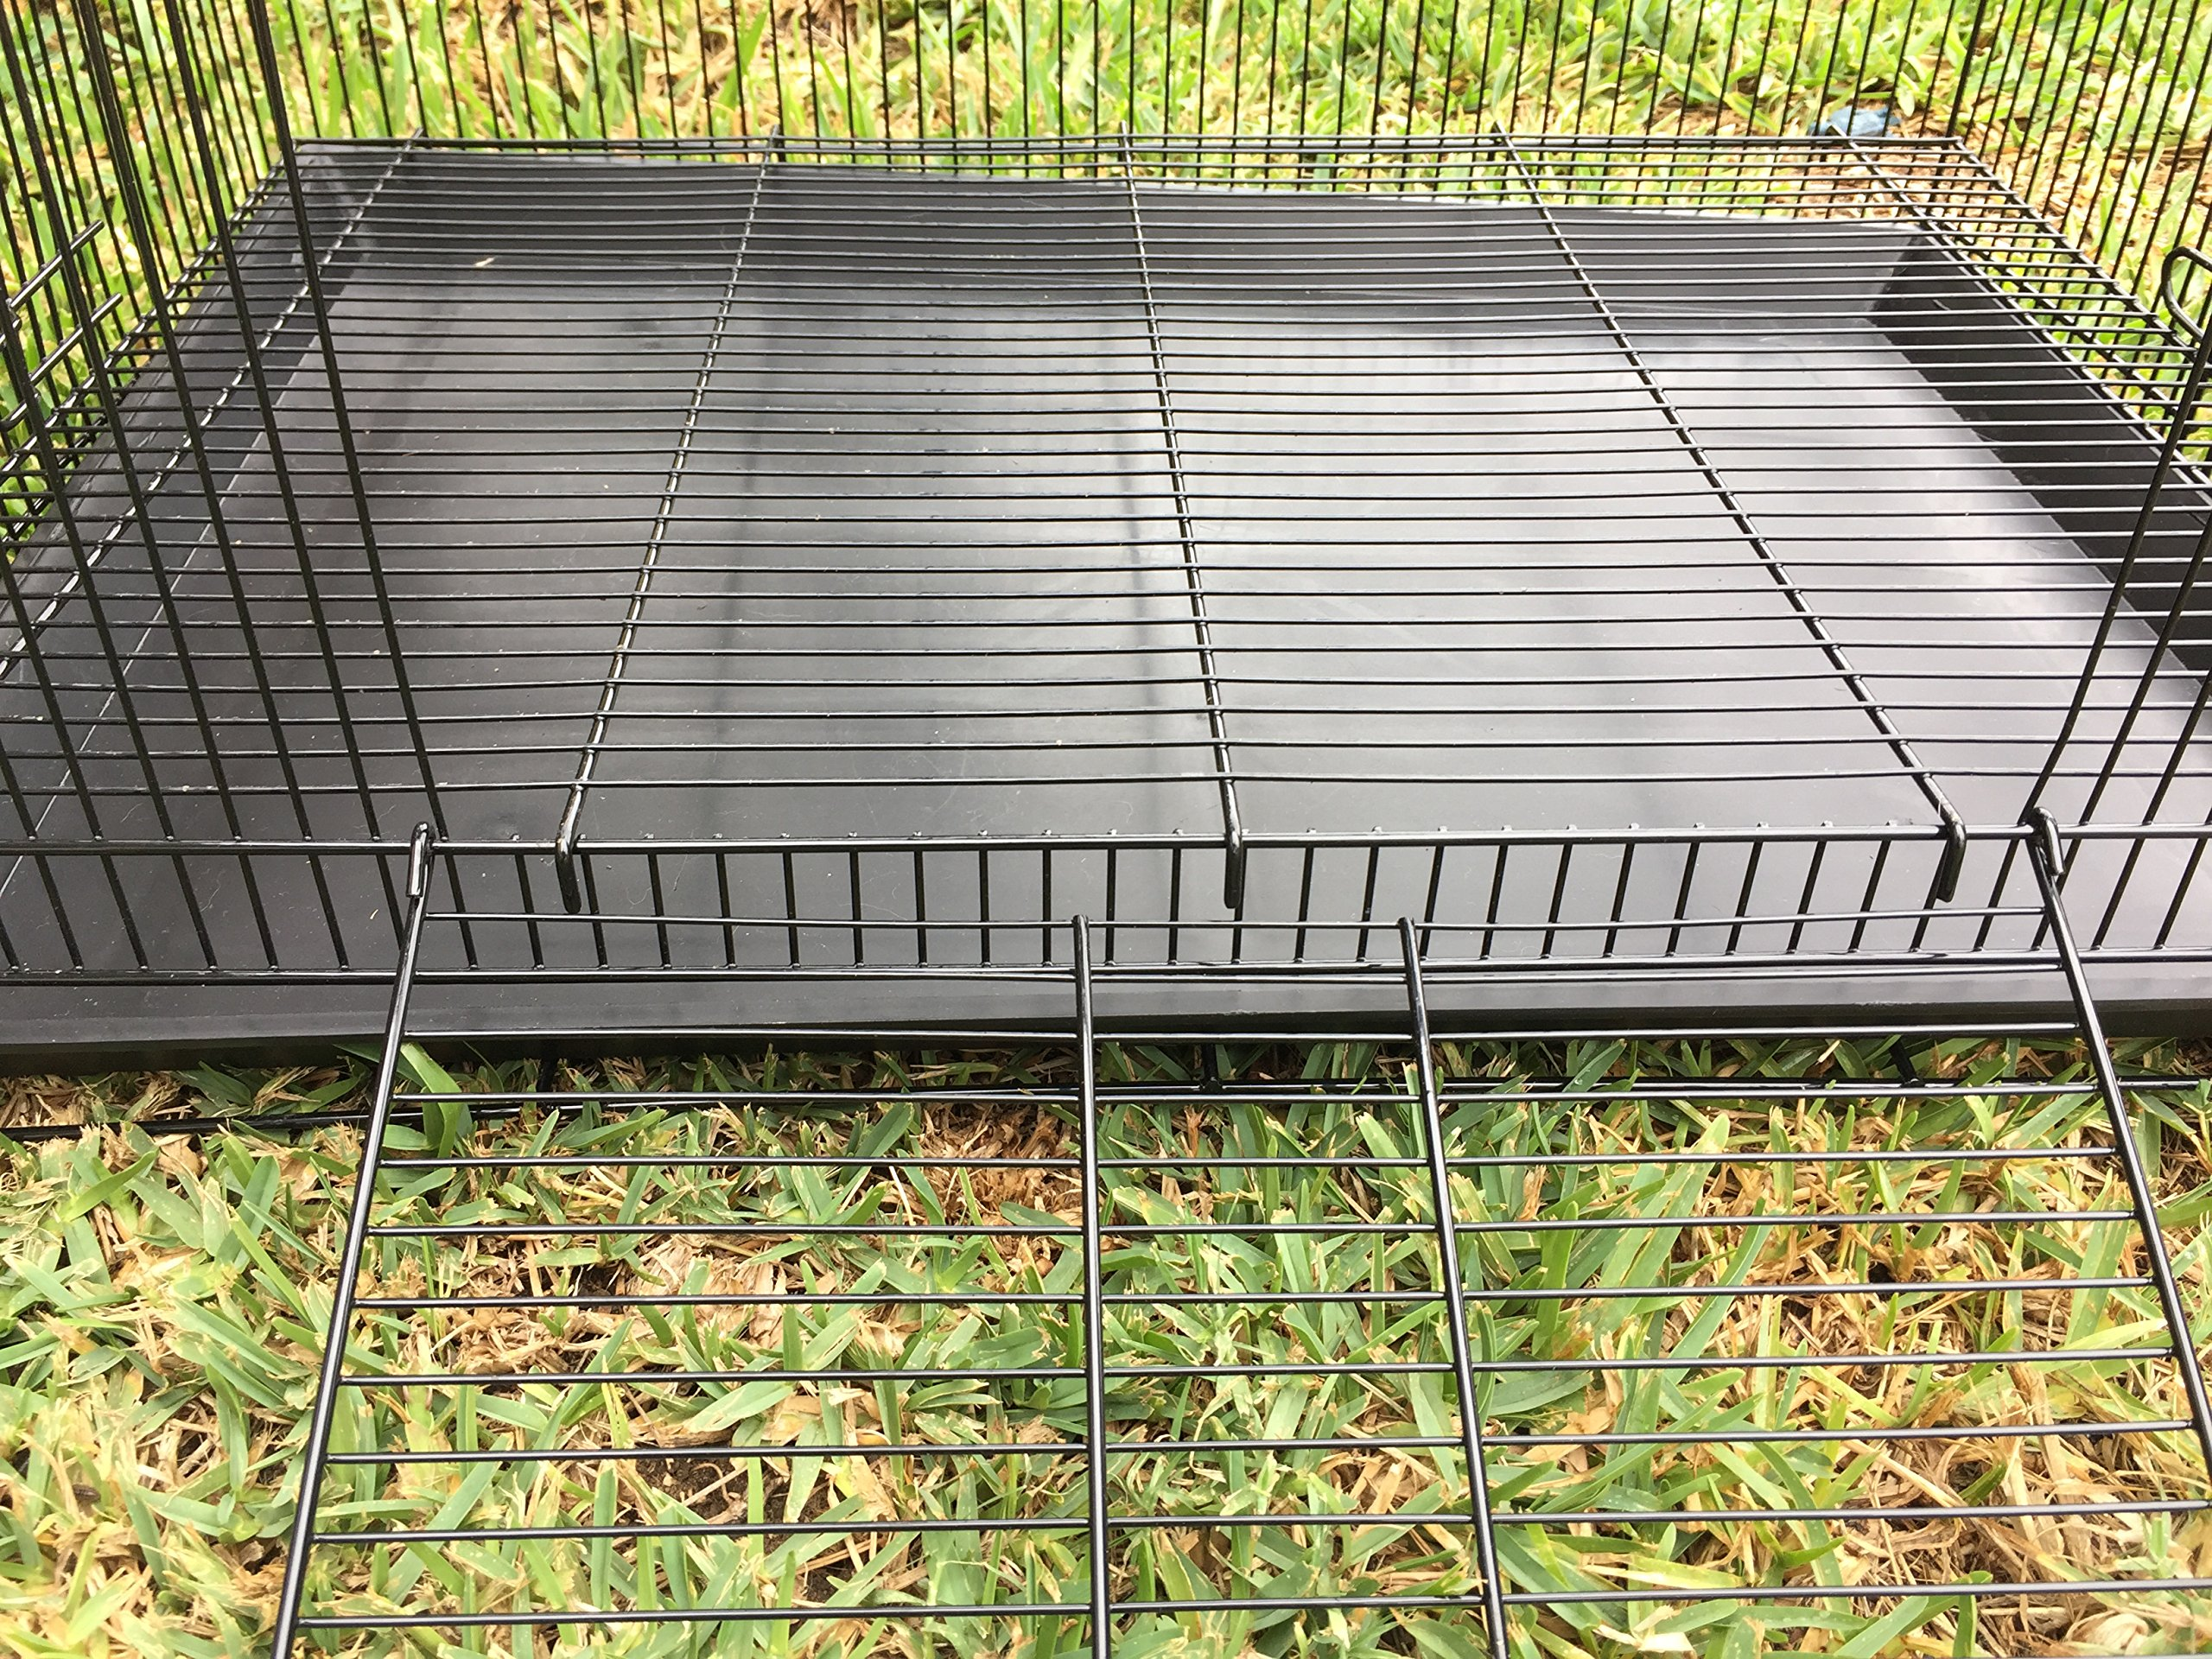 NEW 3 Levels Ferret Chinchilla Sugar Glider Rats Animal Cage 24''Length x 16''Depth x 24''HeightBlack